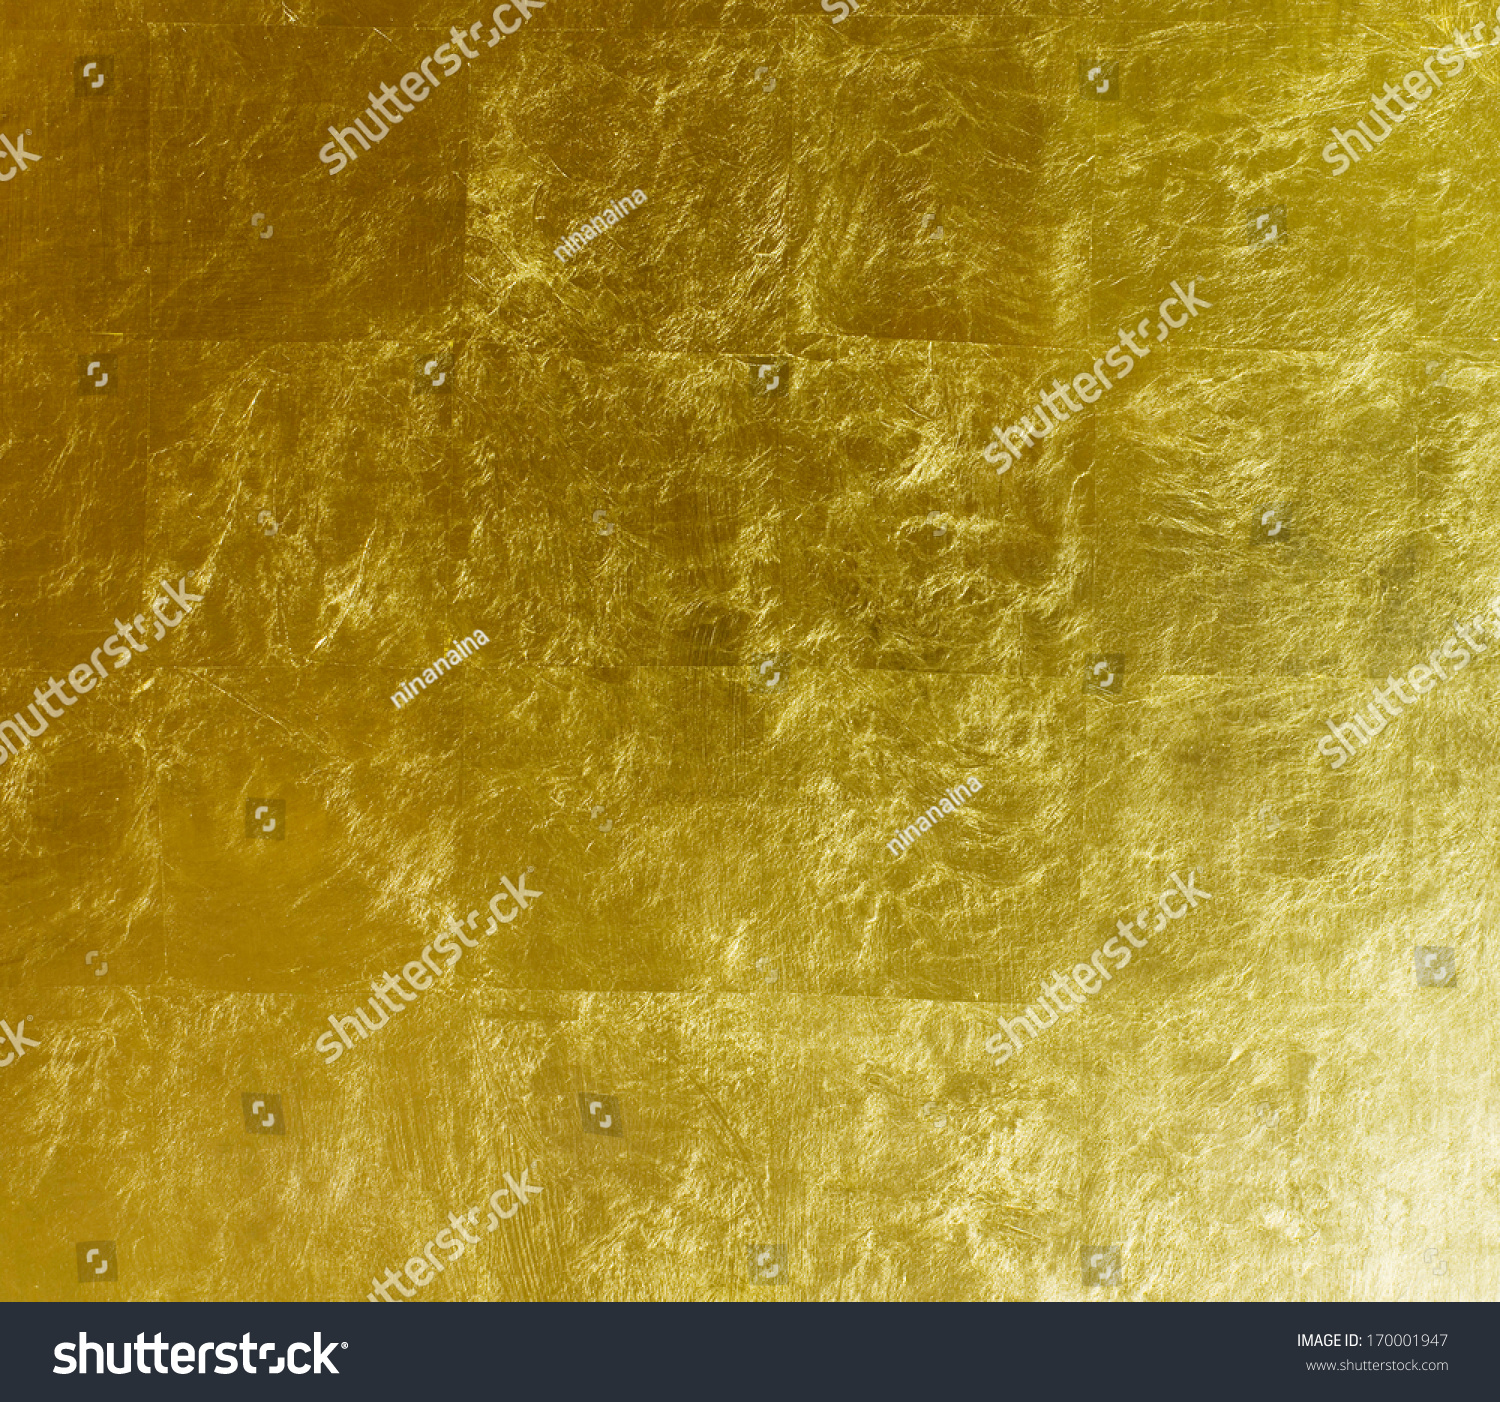 Gold Background Gilded Gold Leaf Stock Photo (Edit Now) 170001947 ... 94038b8b1